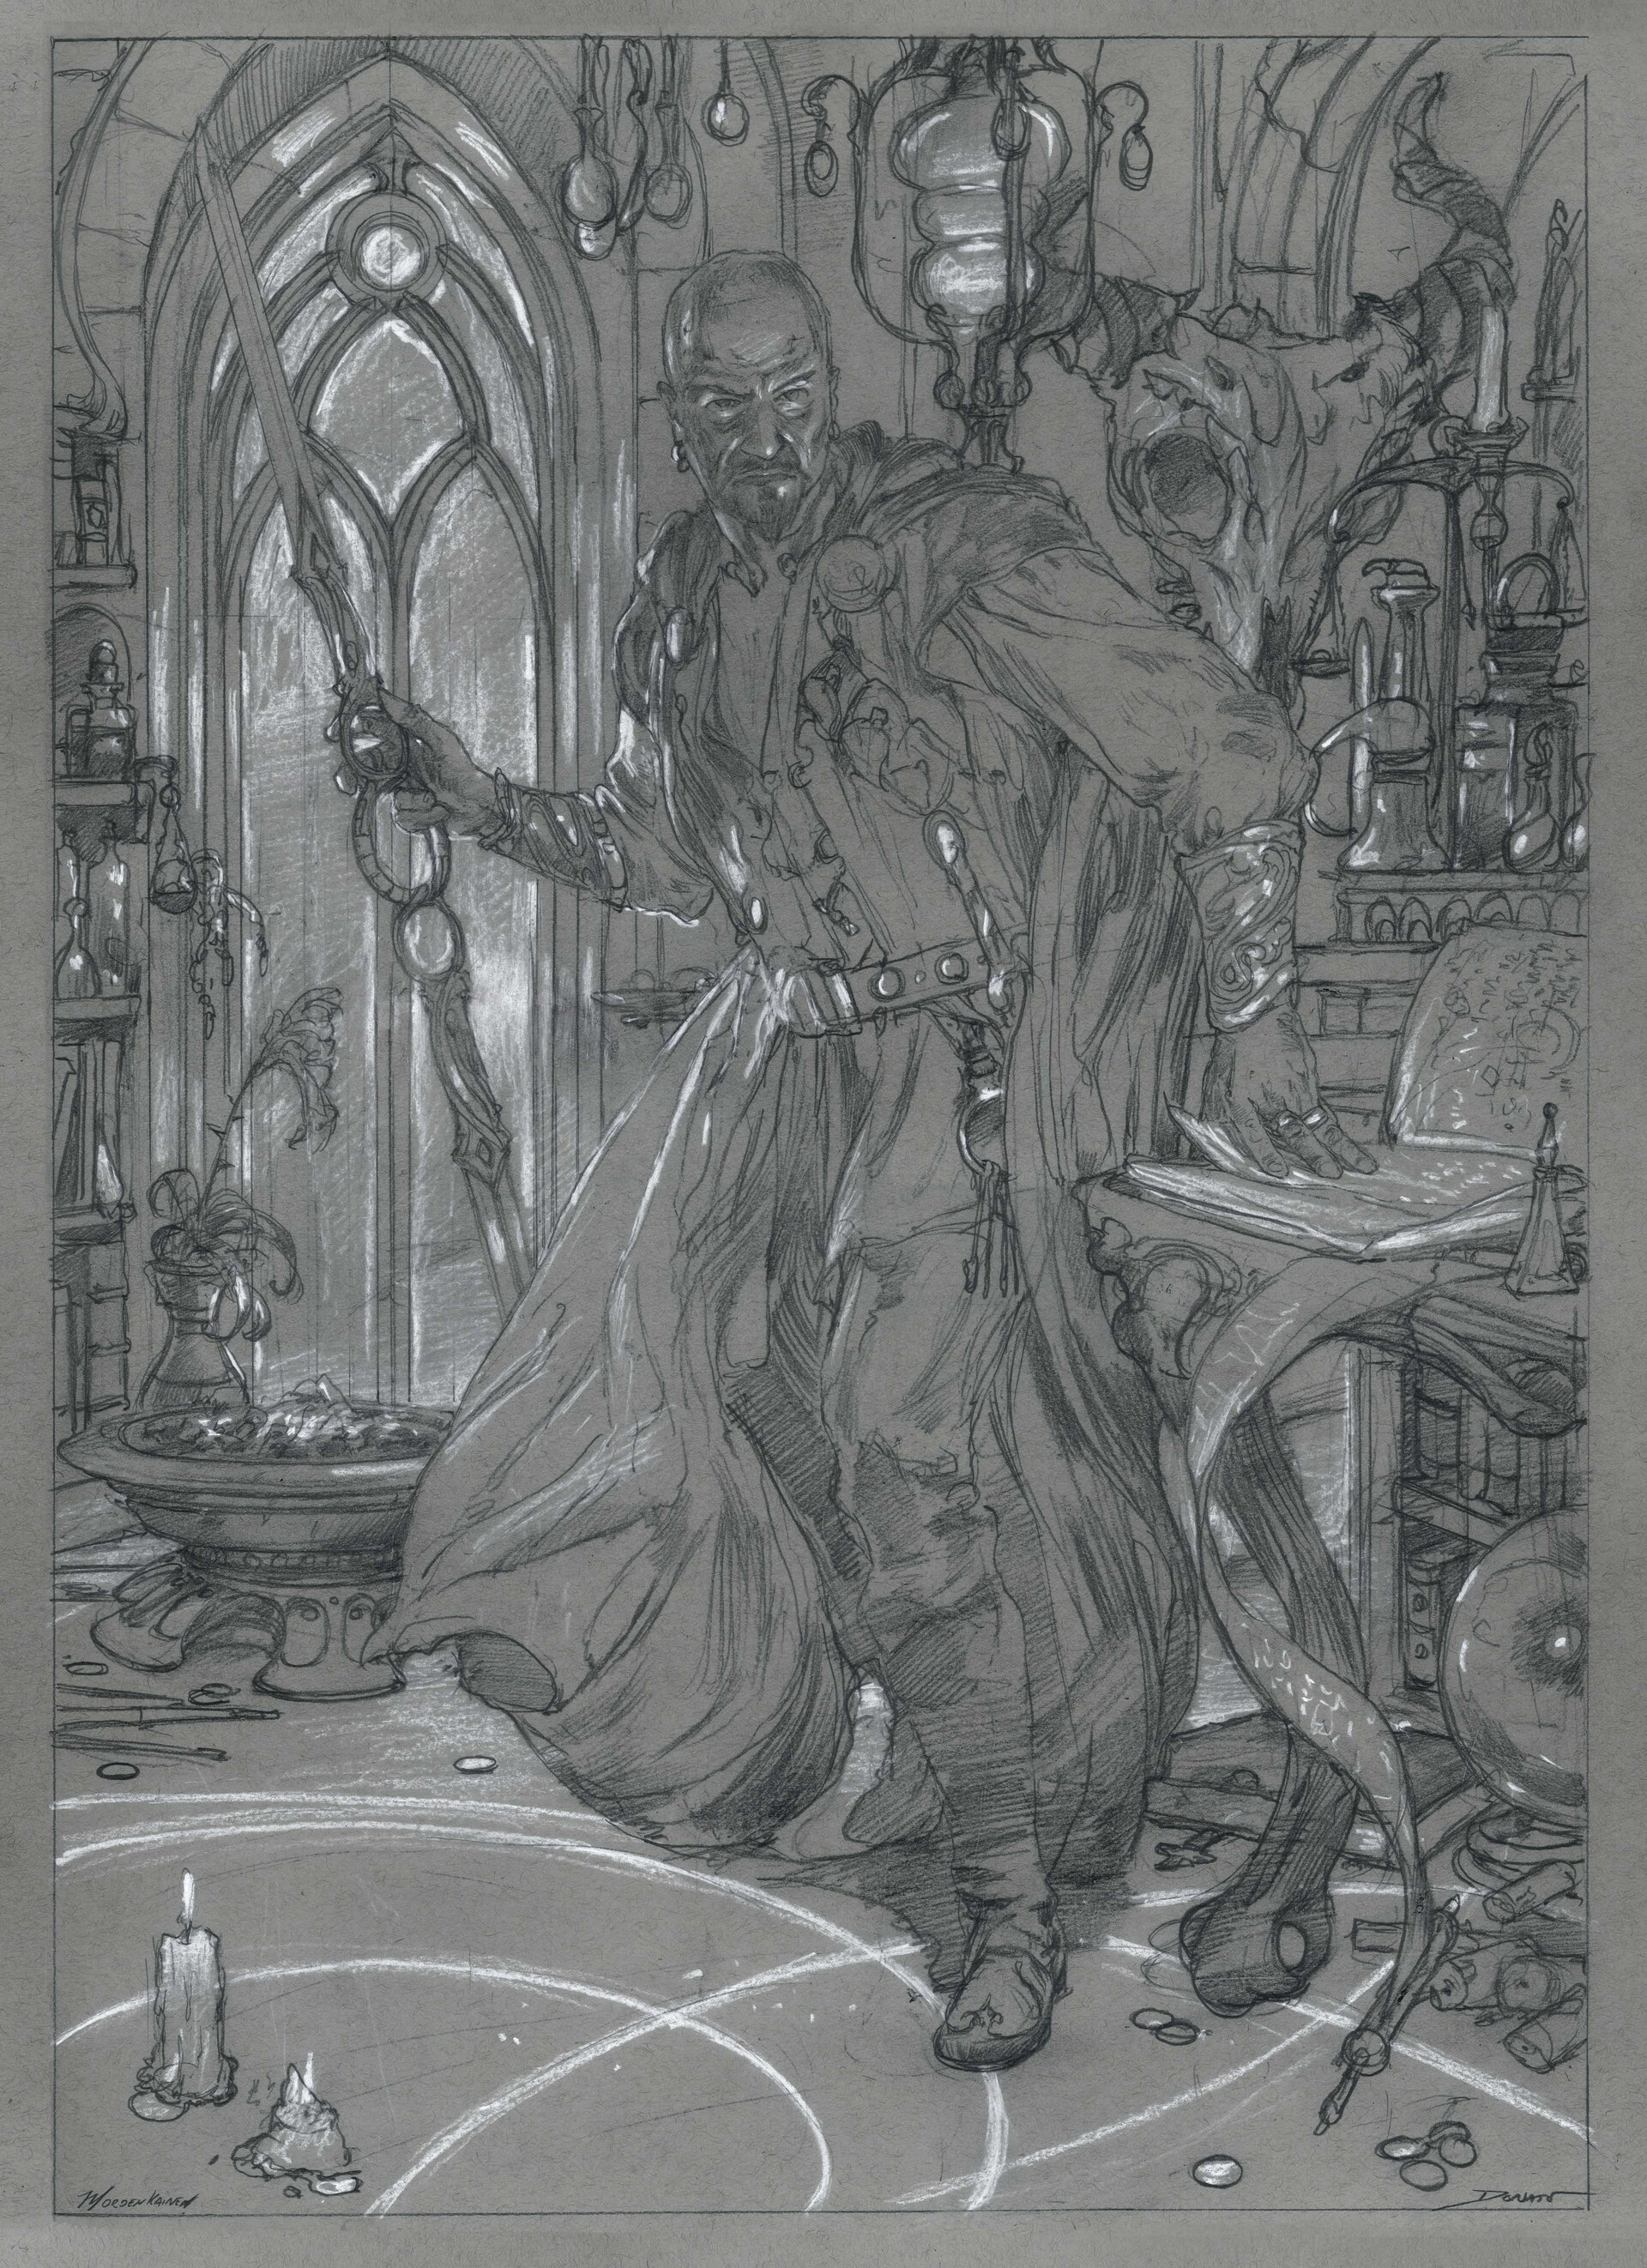 https://youre.outof.cards/media/uploads/f2/5b/f25bf158-2fc7-44d8-9864-89547e4bb49a/mordenkainen_sketch_donatogiancola.jpg